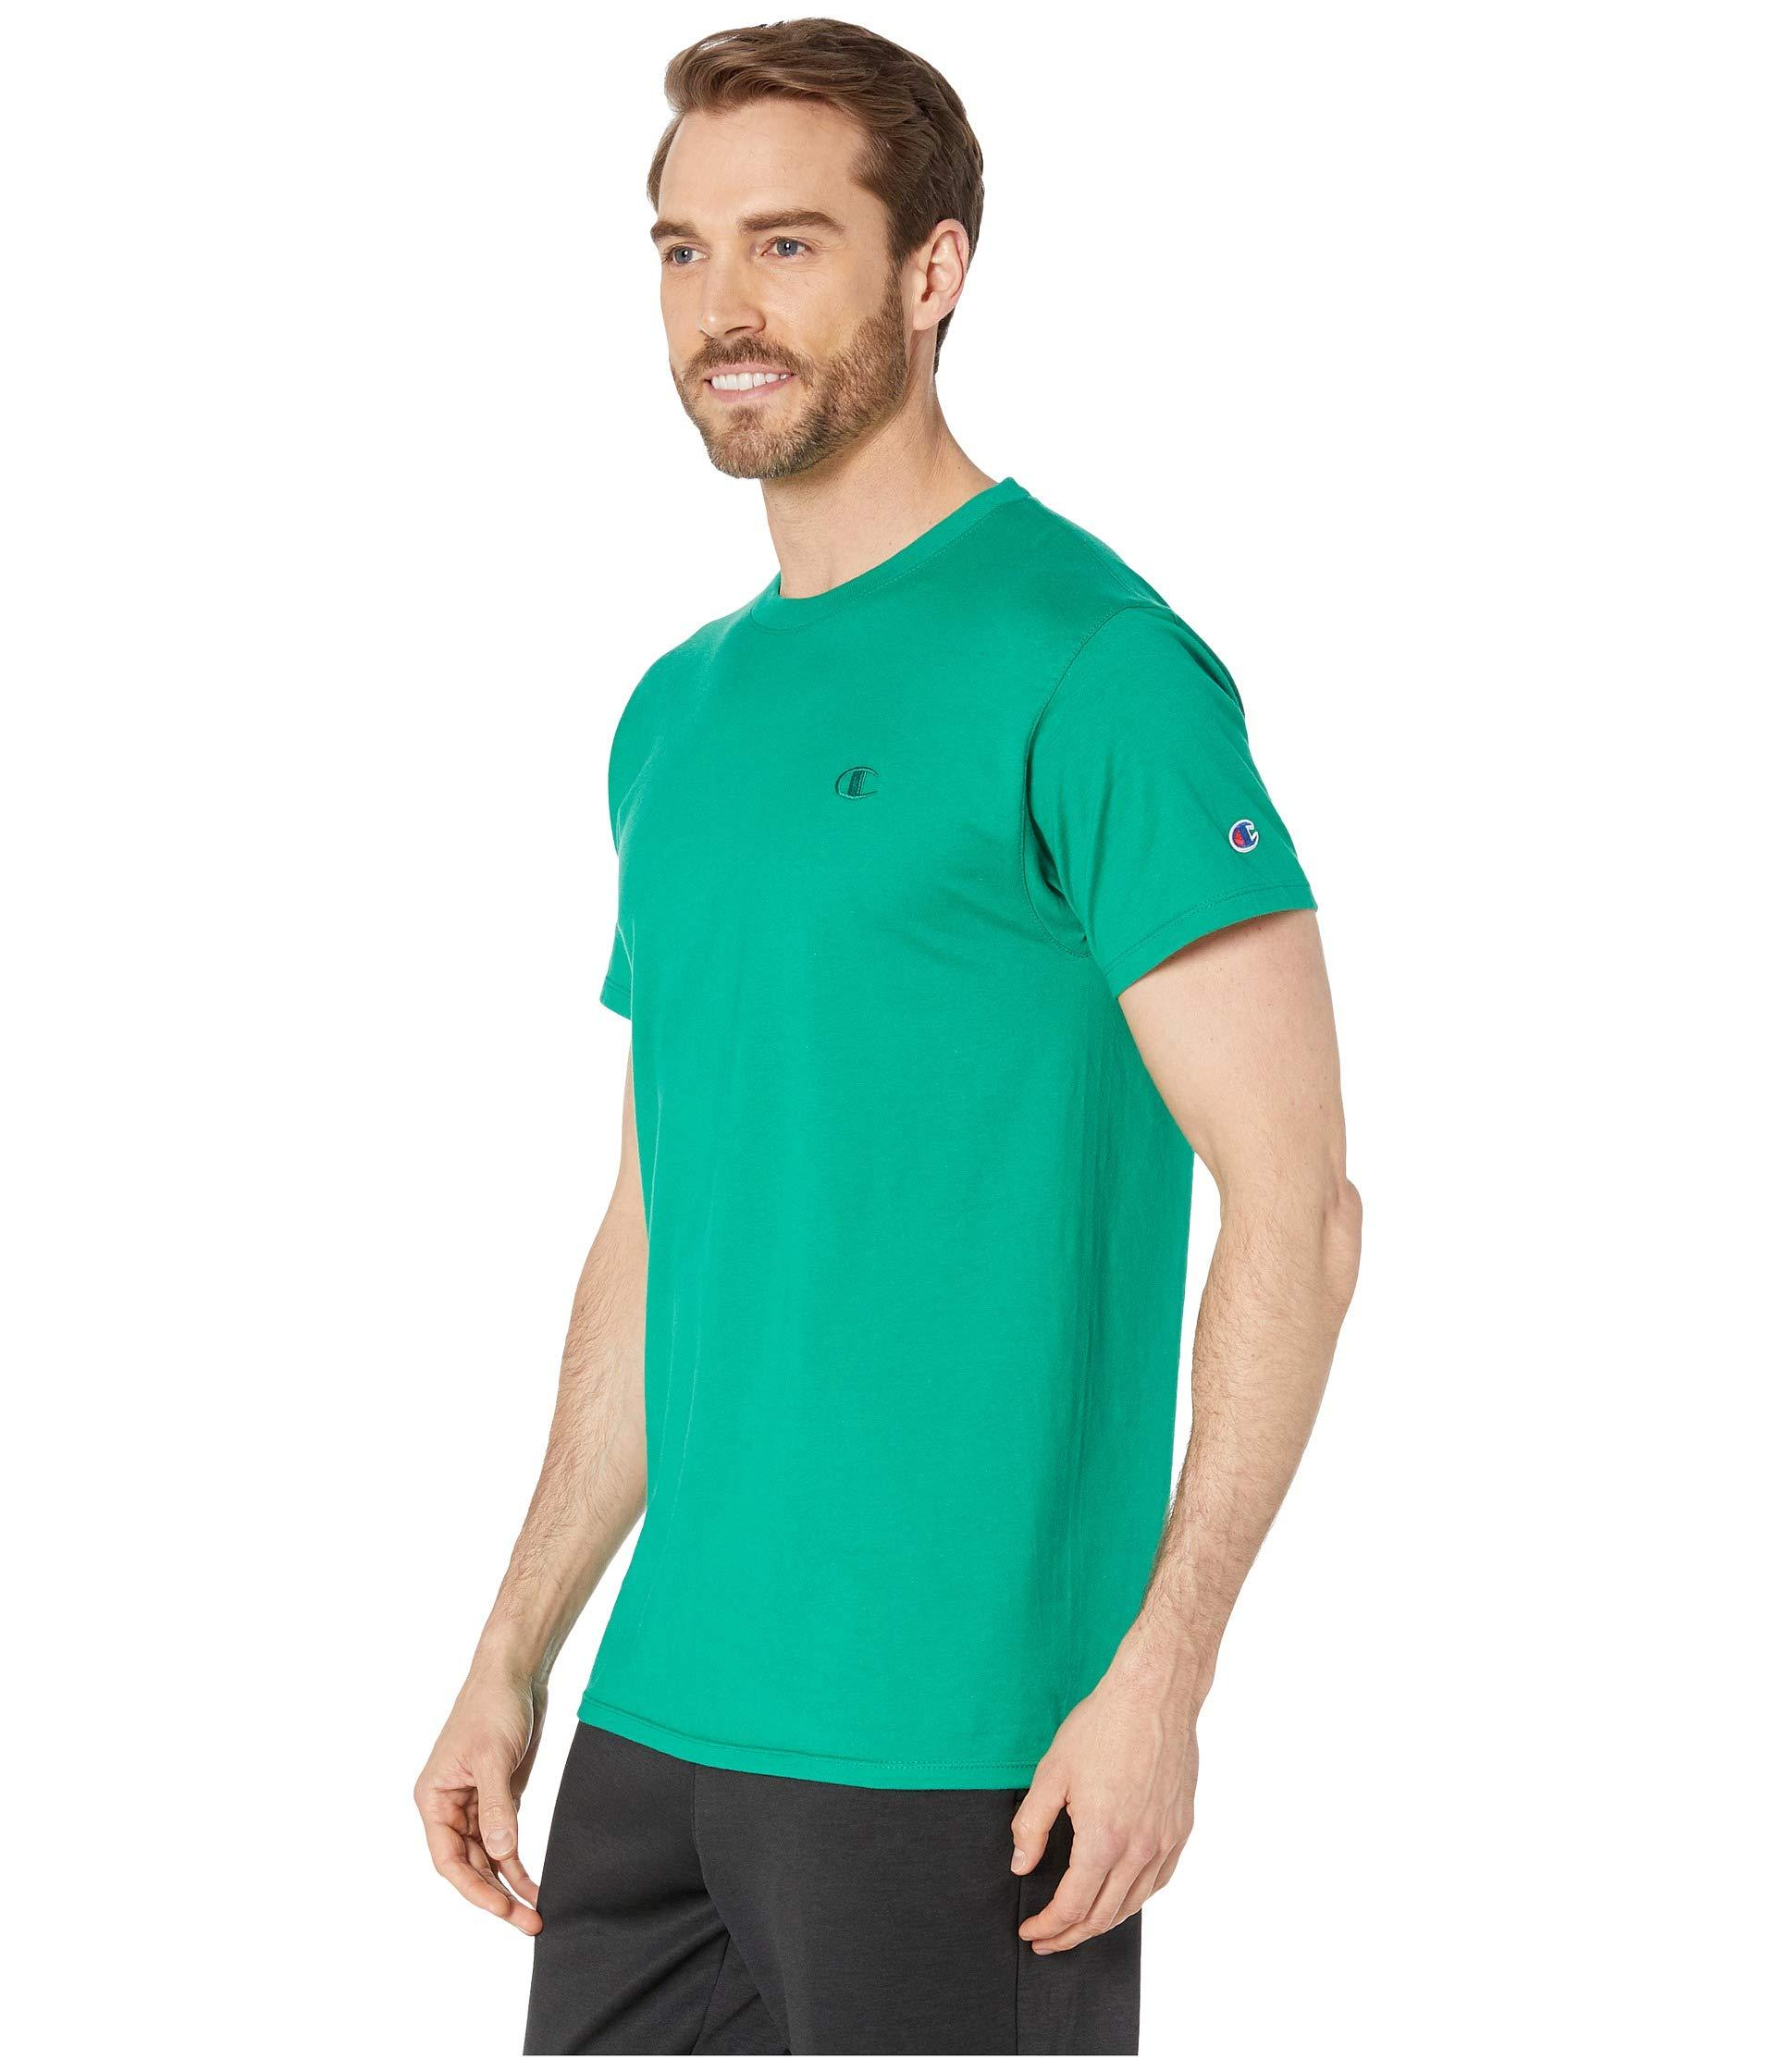 77852d8ae814 Lyst - Champion Classic Jersey Tee in Green for Men